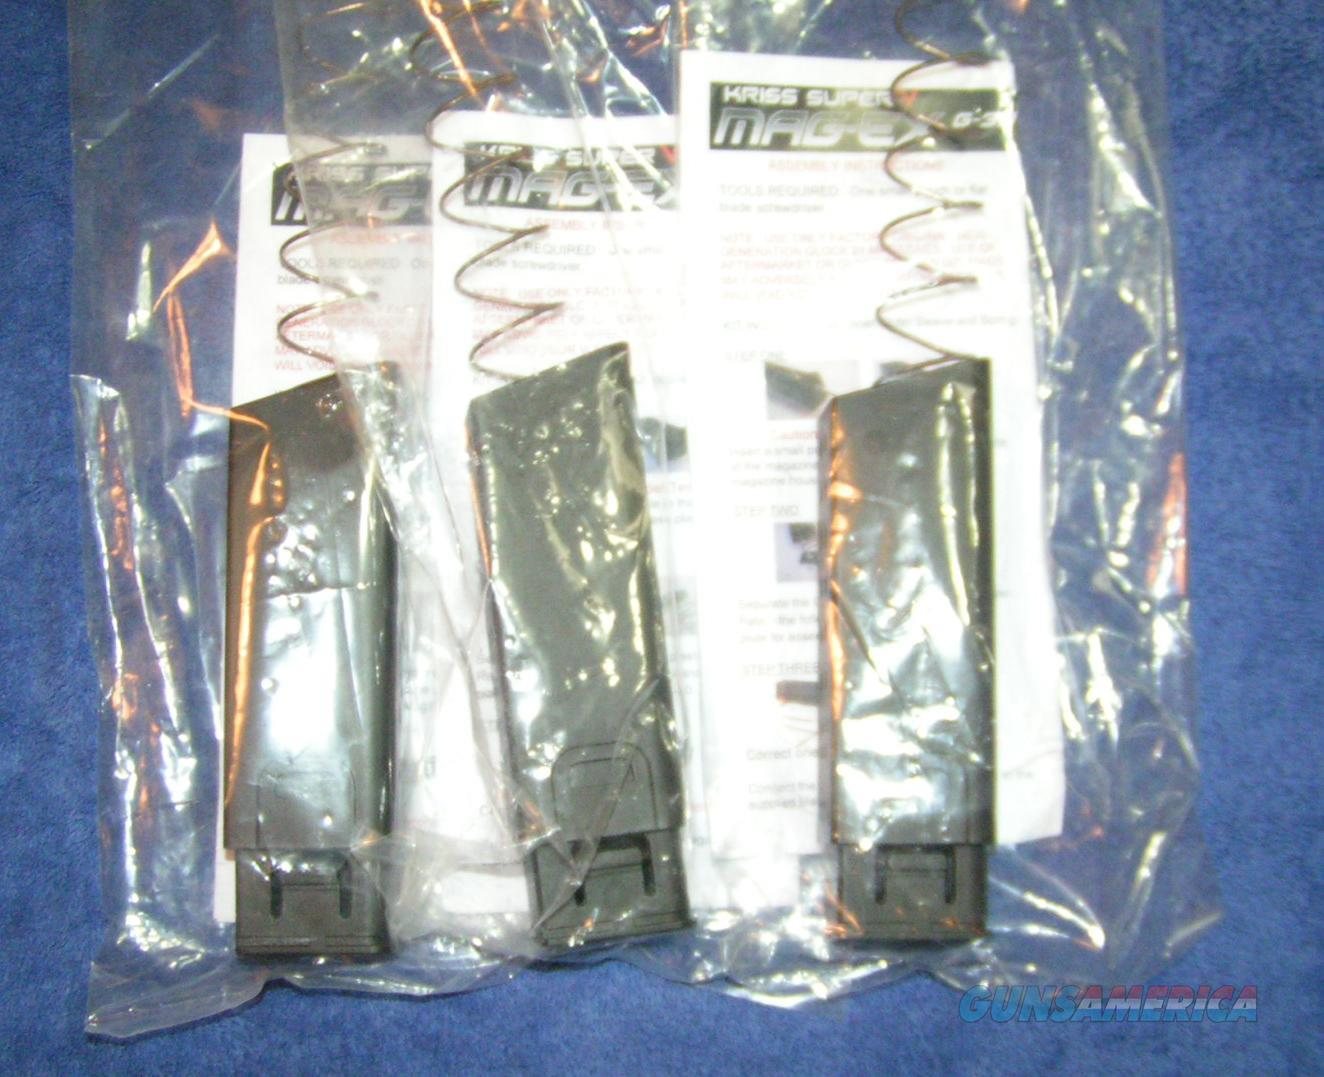 3 Glock 21 Kriss Vector Kits Free shipping. (no mags included)  Non-Guns > Magazines & Clips